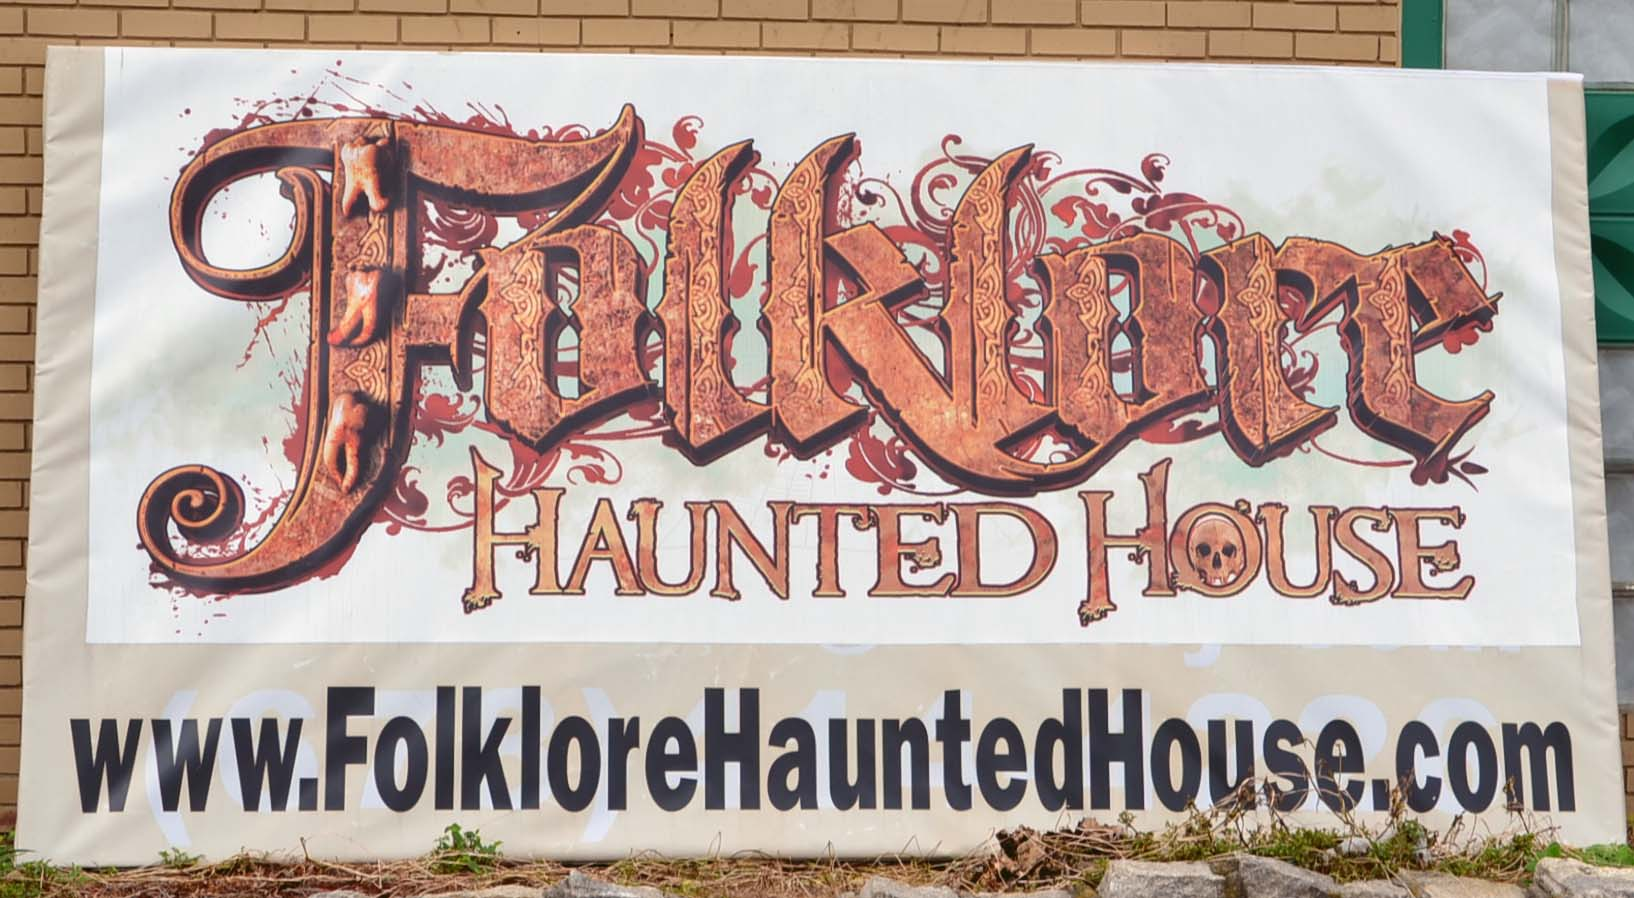 Ribbon Cutting for Folklore Haunted House 1